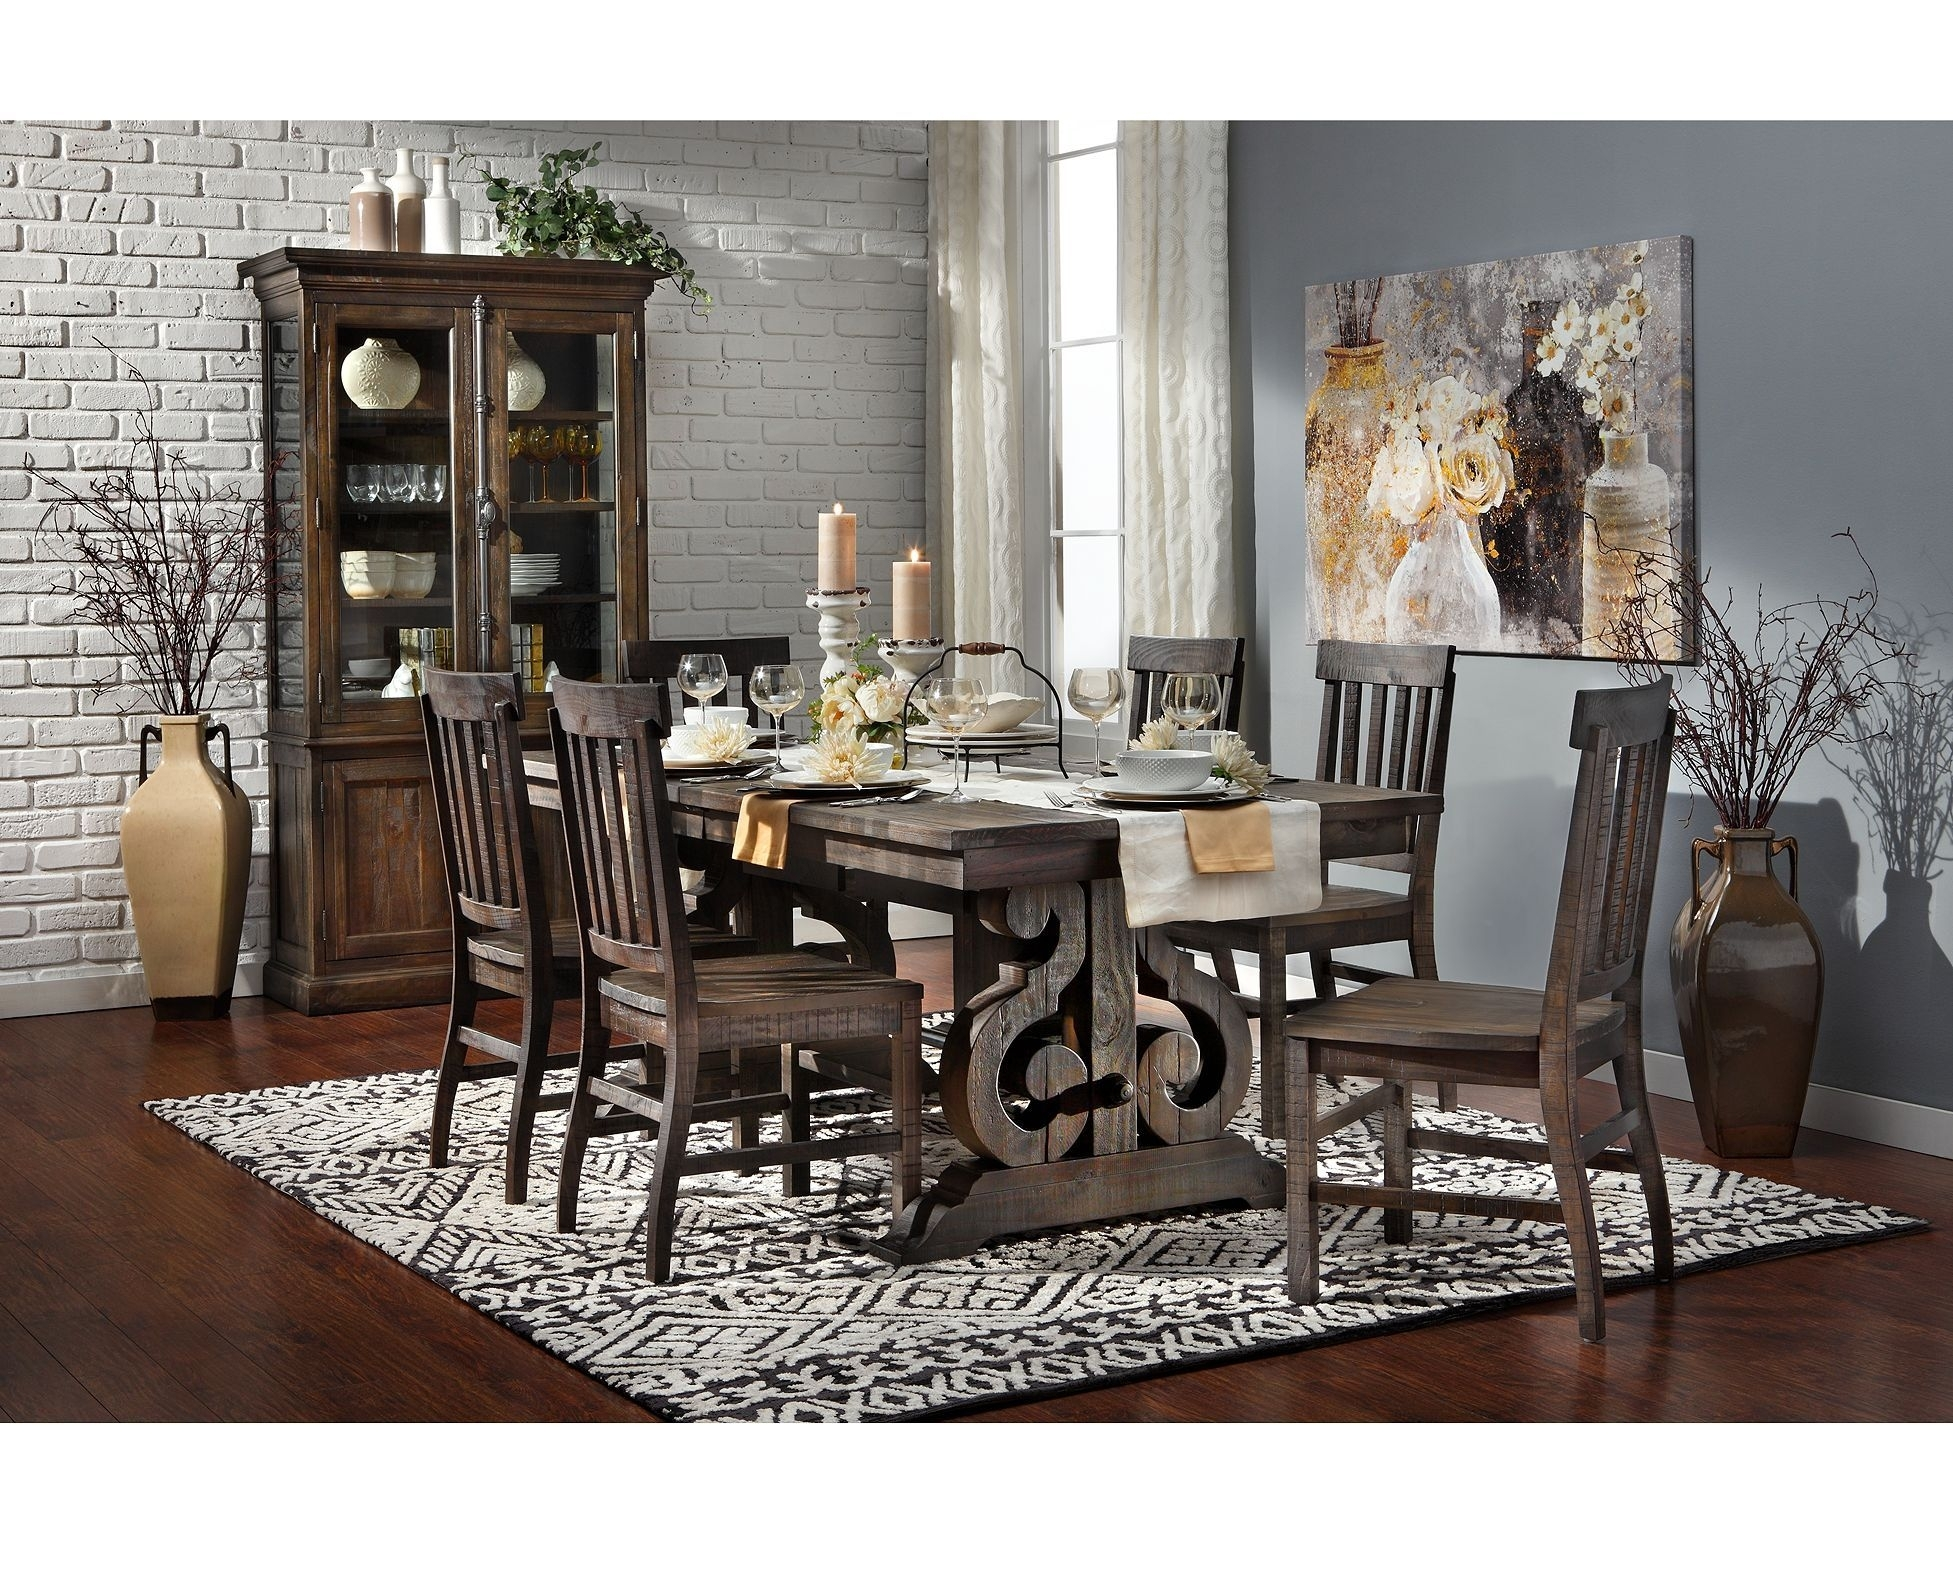 Sedona Dining Table | Dining Room | Pinterest | Dining, Magnolia Inside Newest Magnolia Home White Keeping 96 Inch Dining Tables (Image 17 of 20)